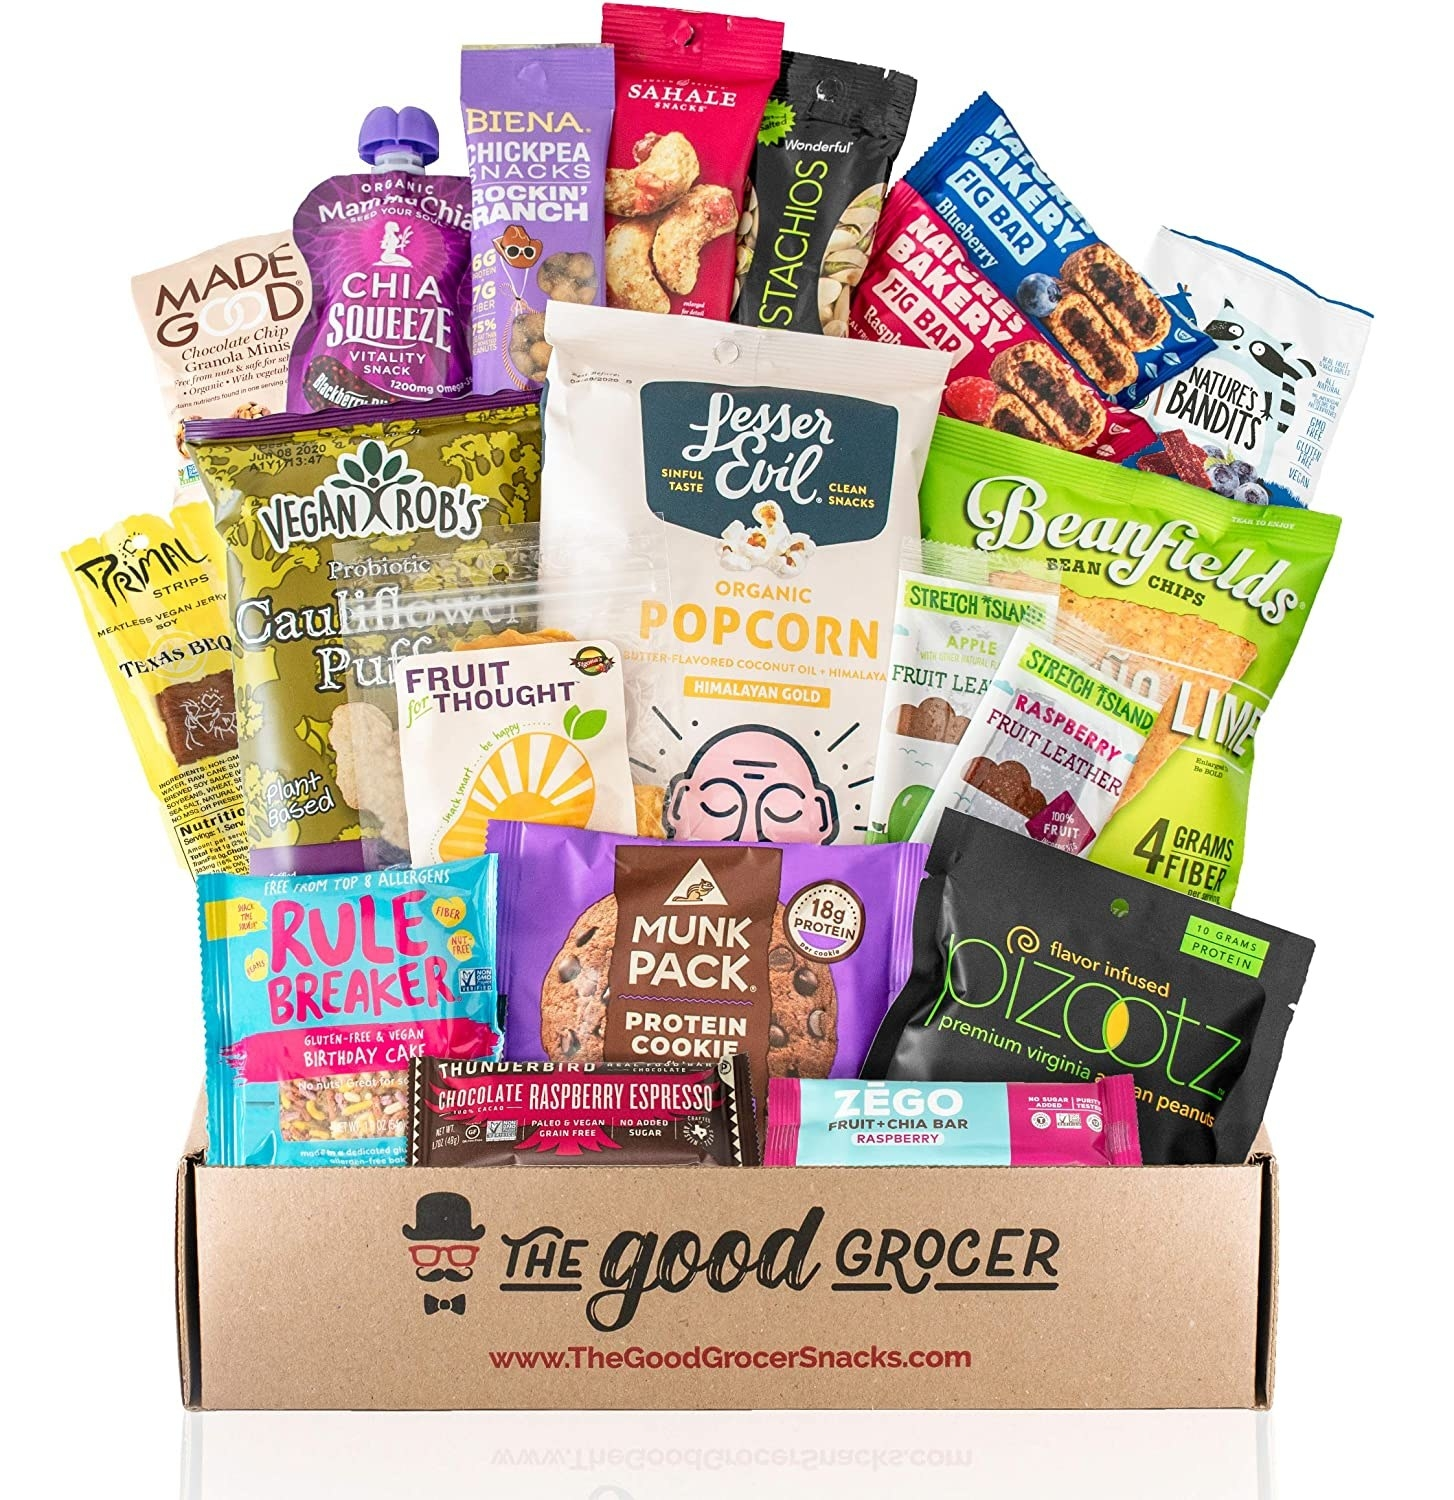 a box filled with vegan snacks like bean chips, fig bars, and cauliflower puffs